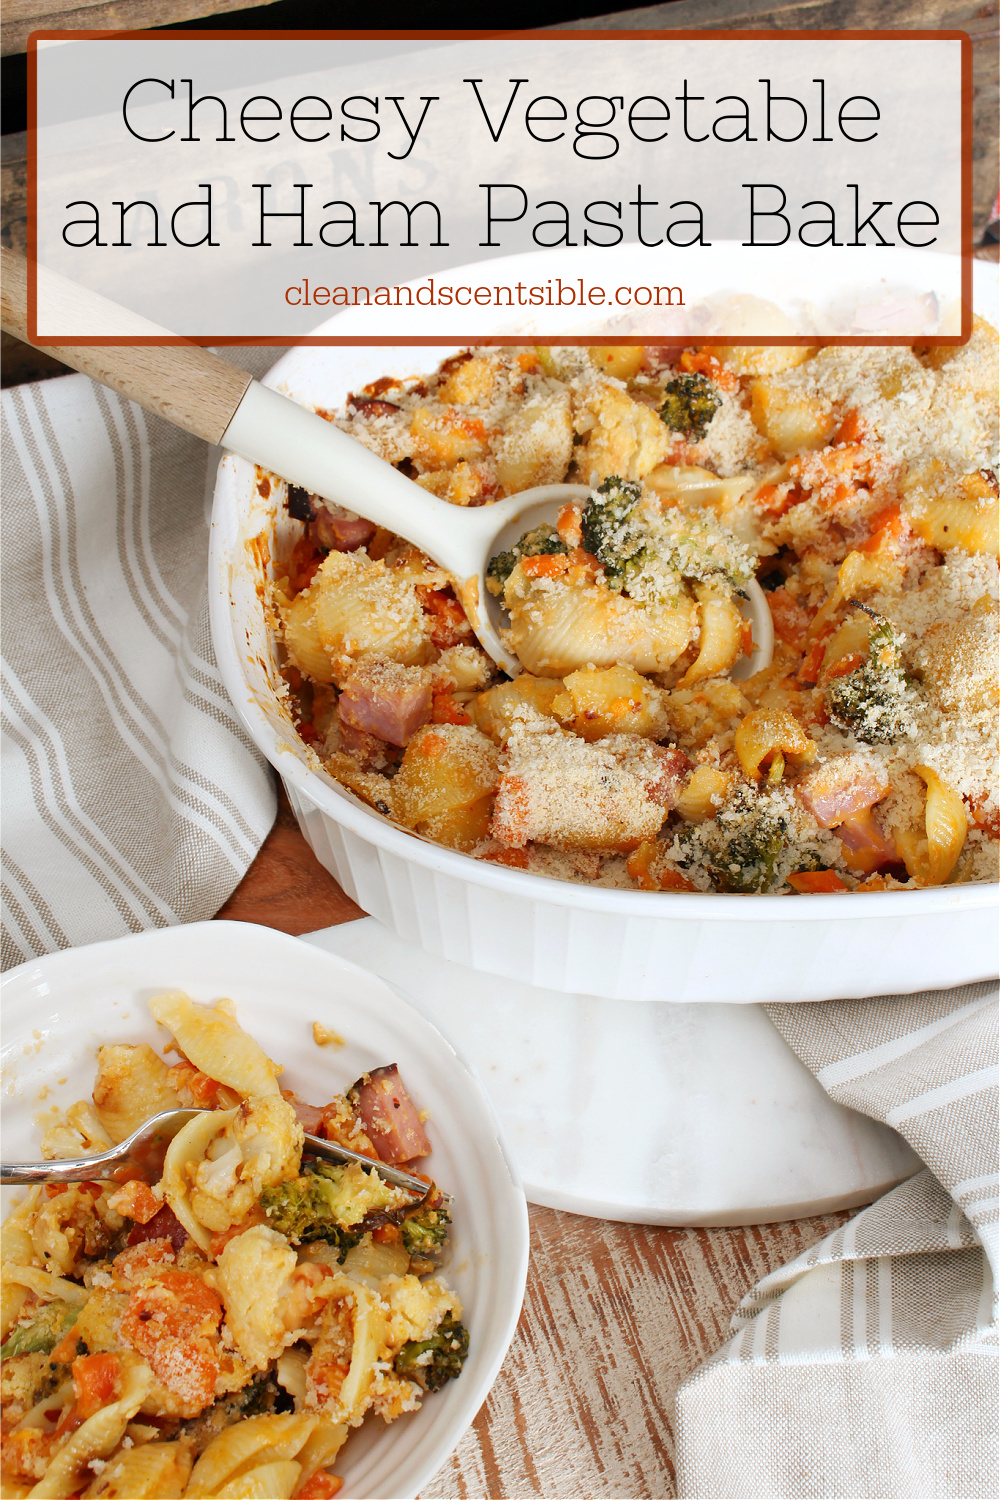 Cheesy vegetable and ham pasta bake in a white Corning ware dish.